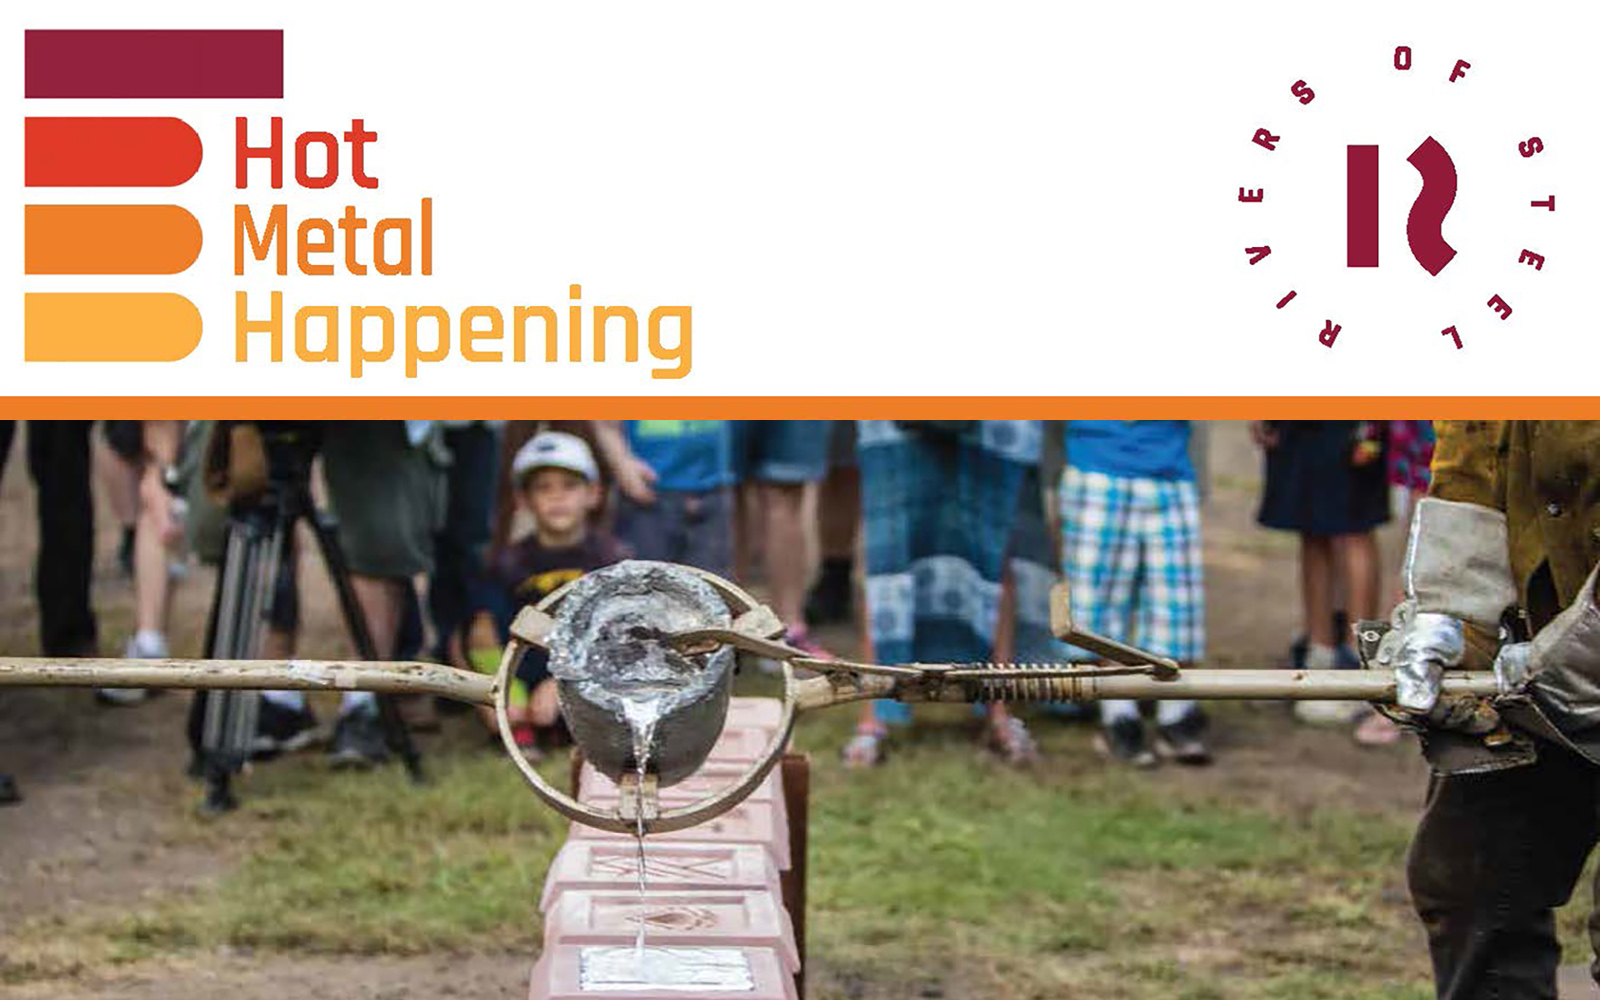 hot metal happening banner with small child watching the casting